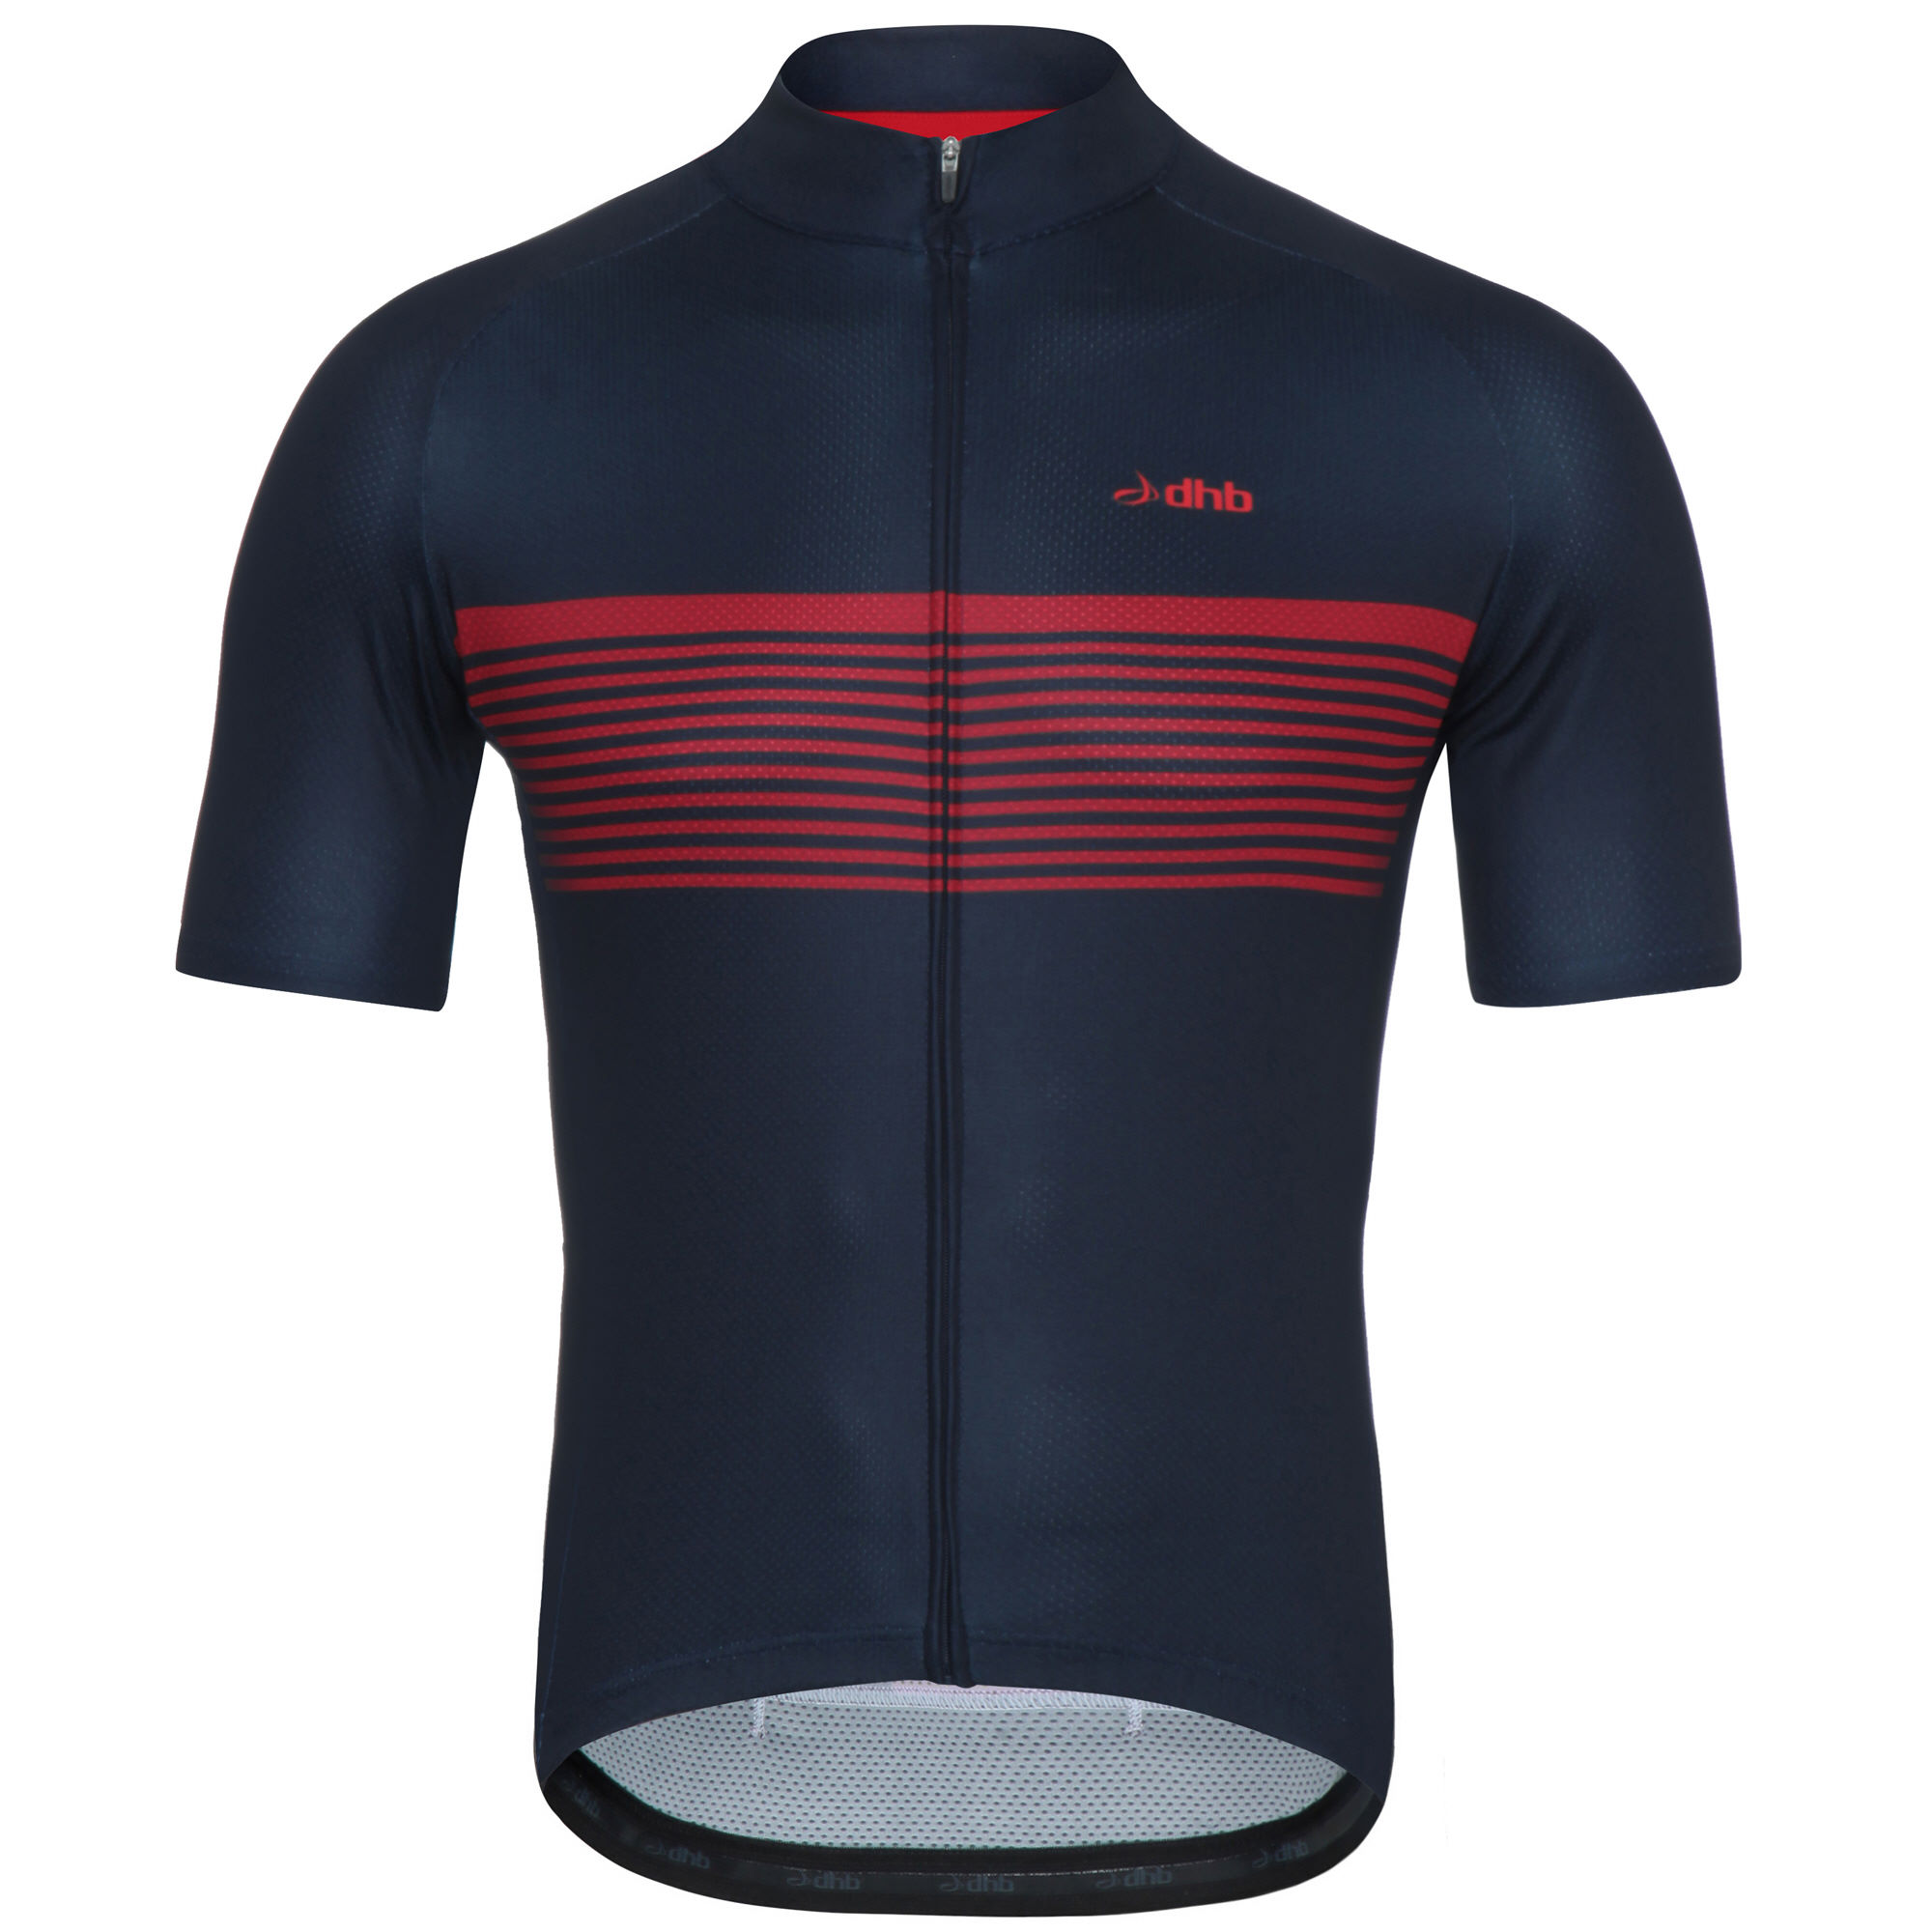 Freedom isn t free cycling jersey - Dhb Classic Short Sleeve Jersey